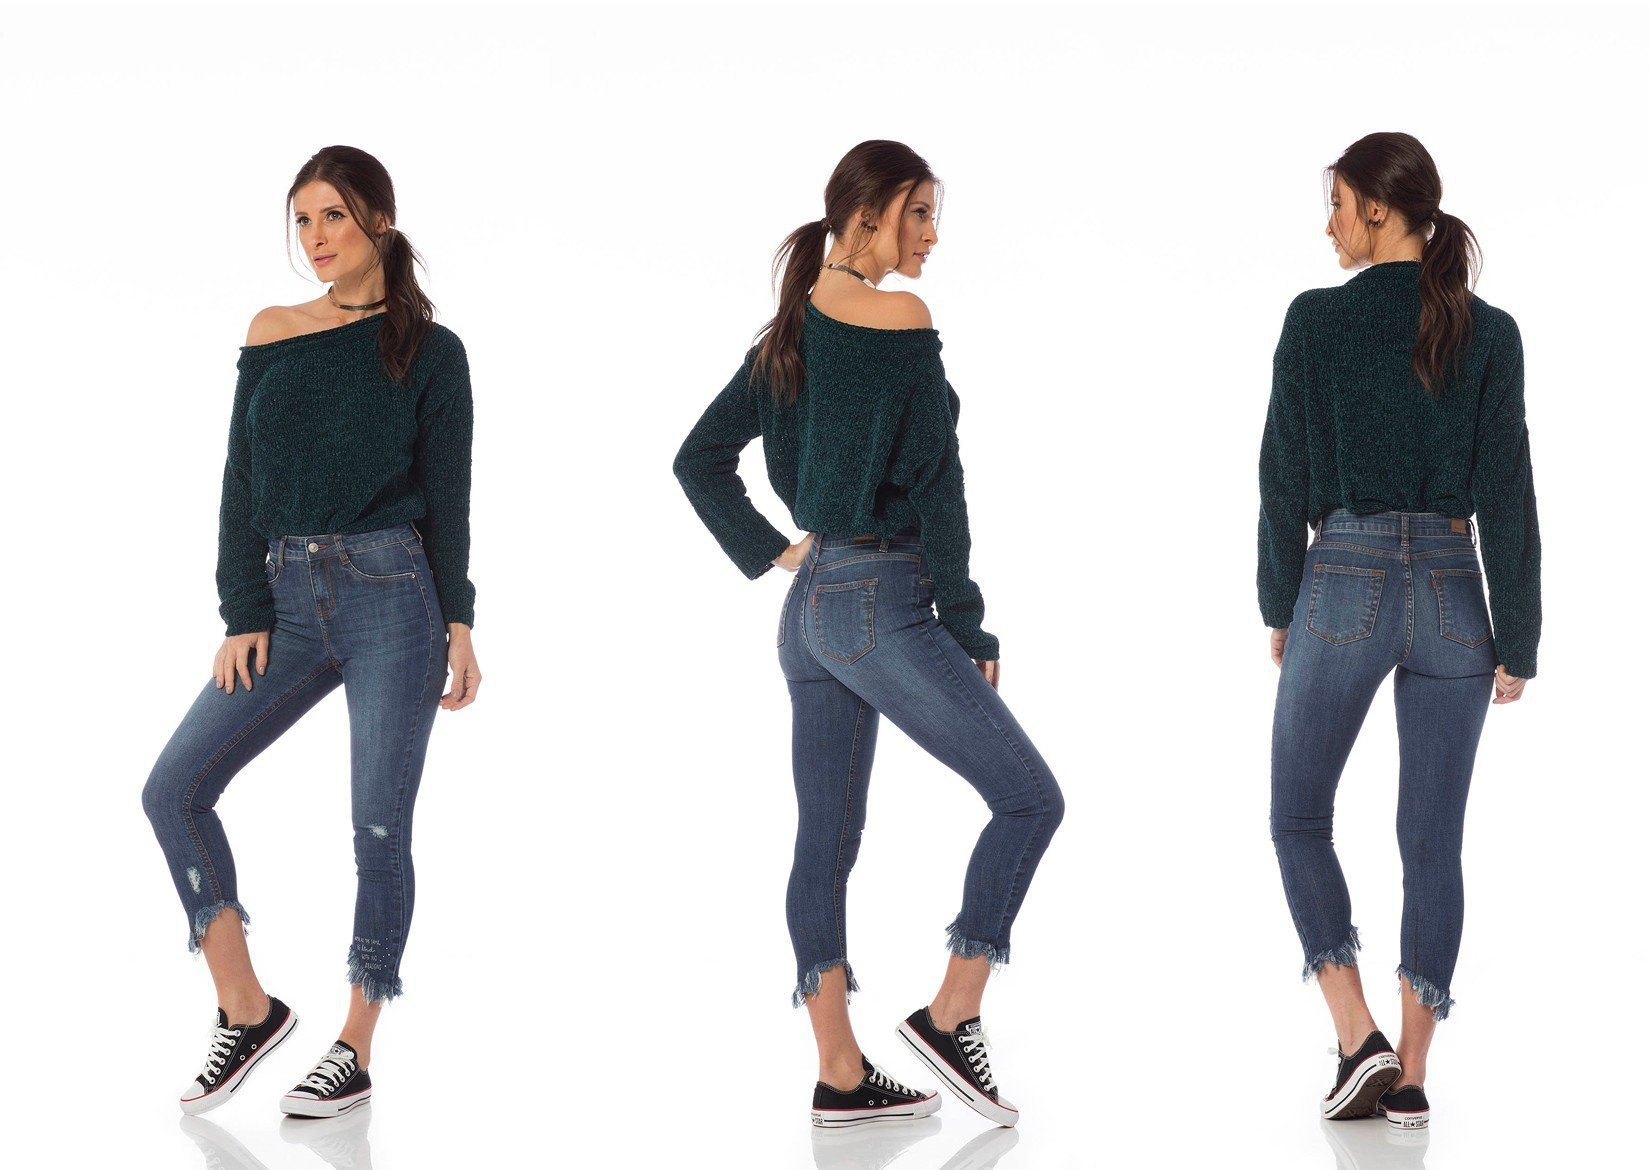 calca skinny media cropped puidos dz2640 tripla denim zero